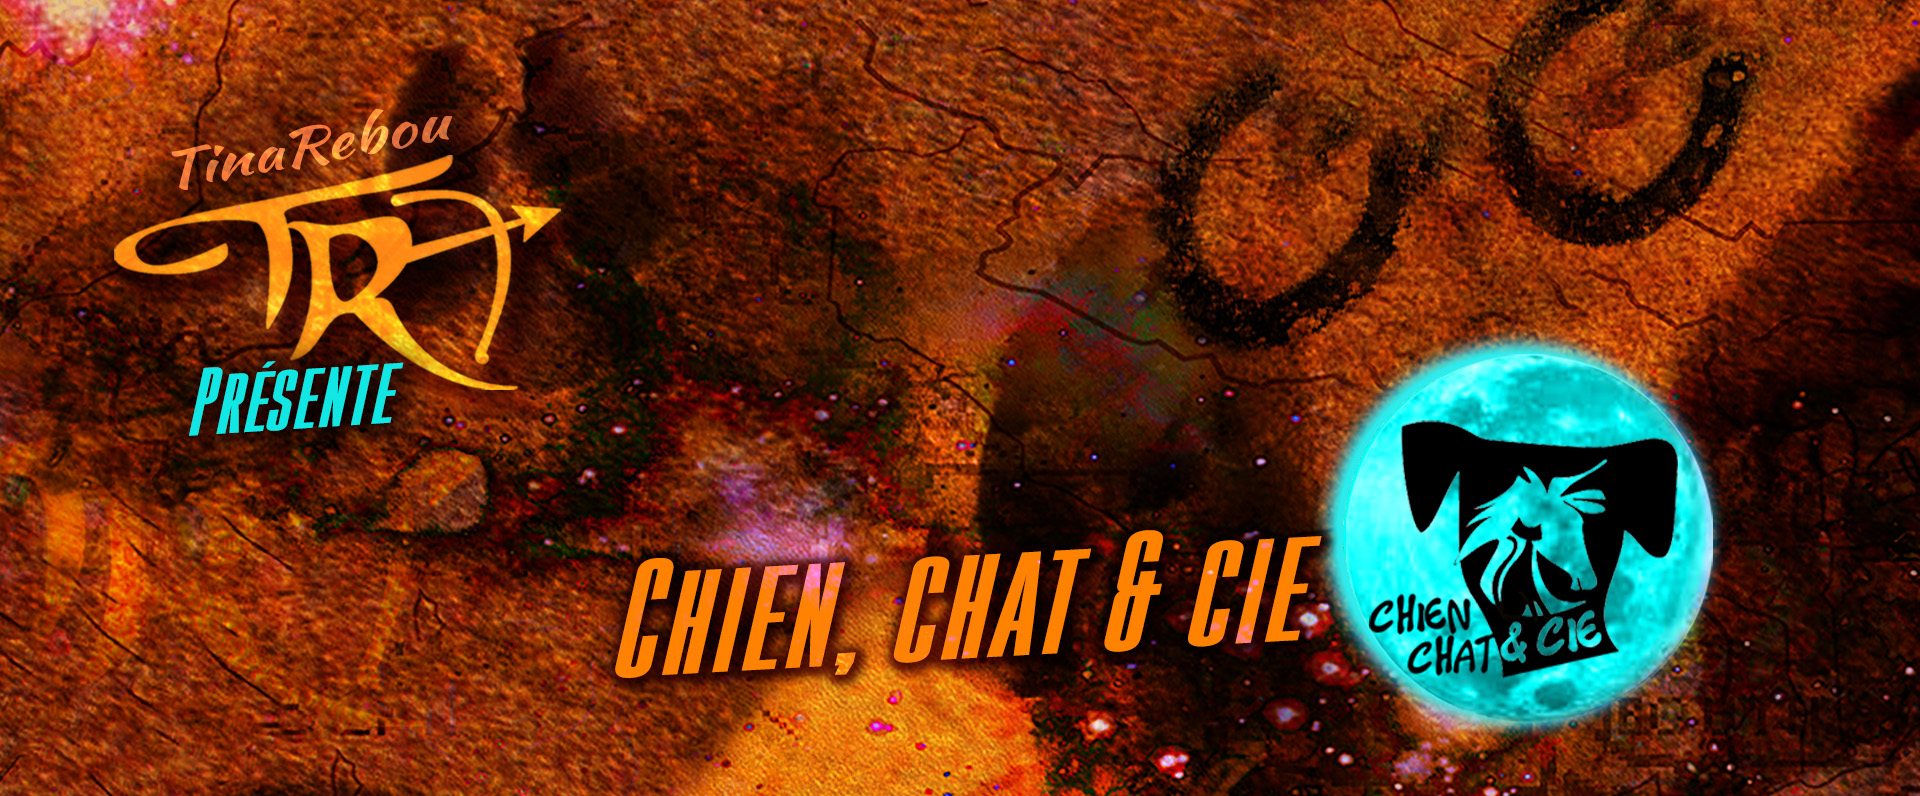 Chien, Chat & Cie